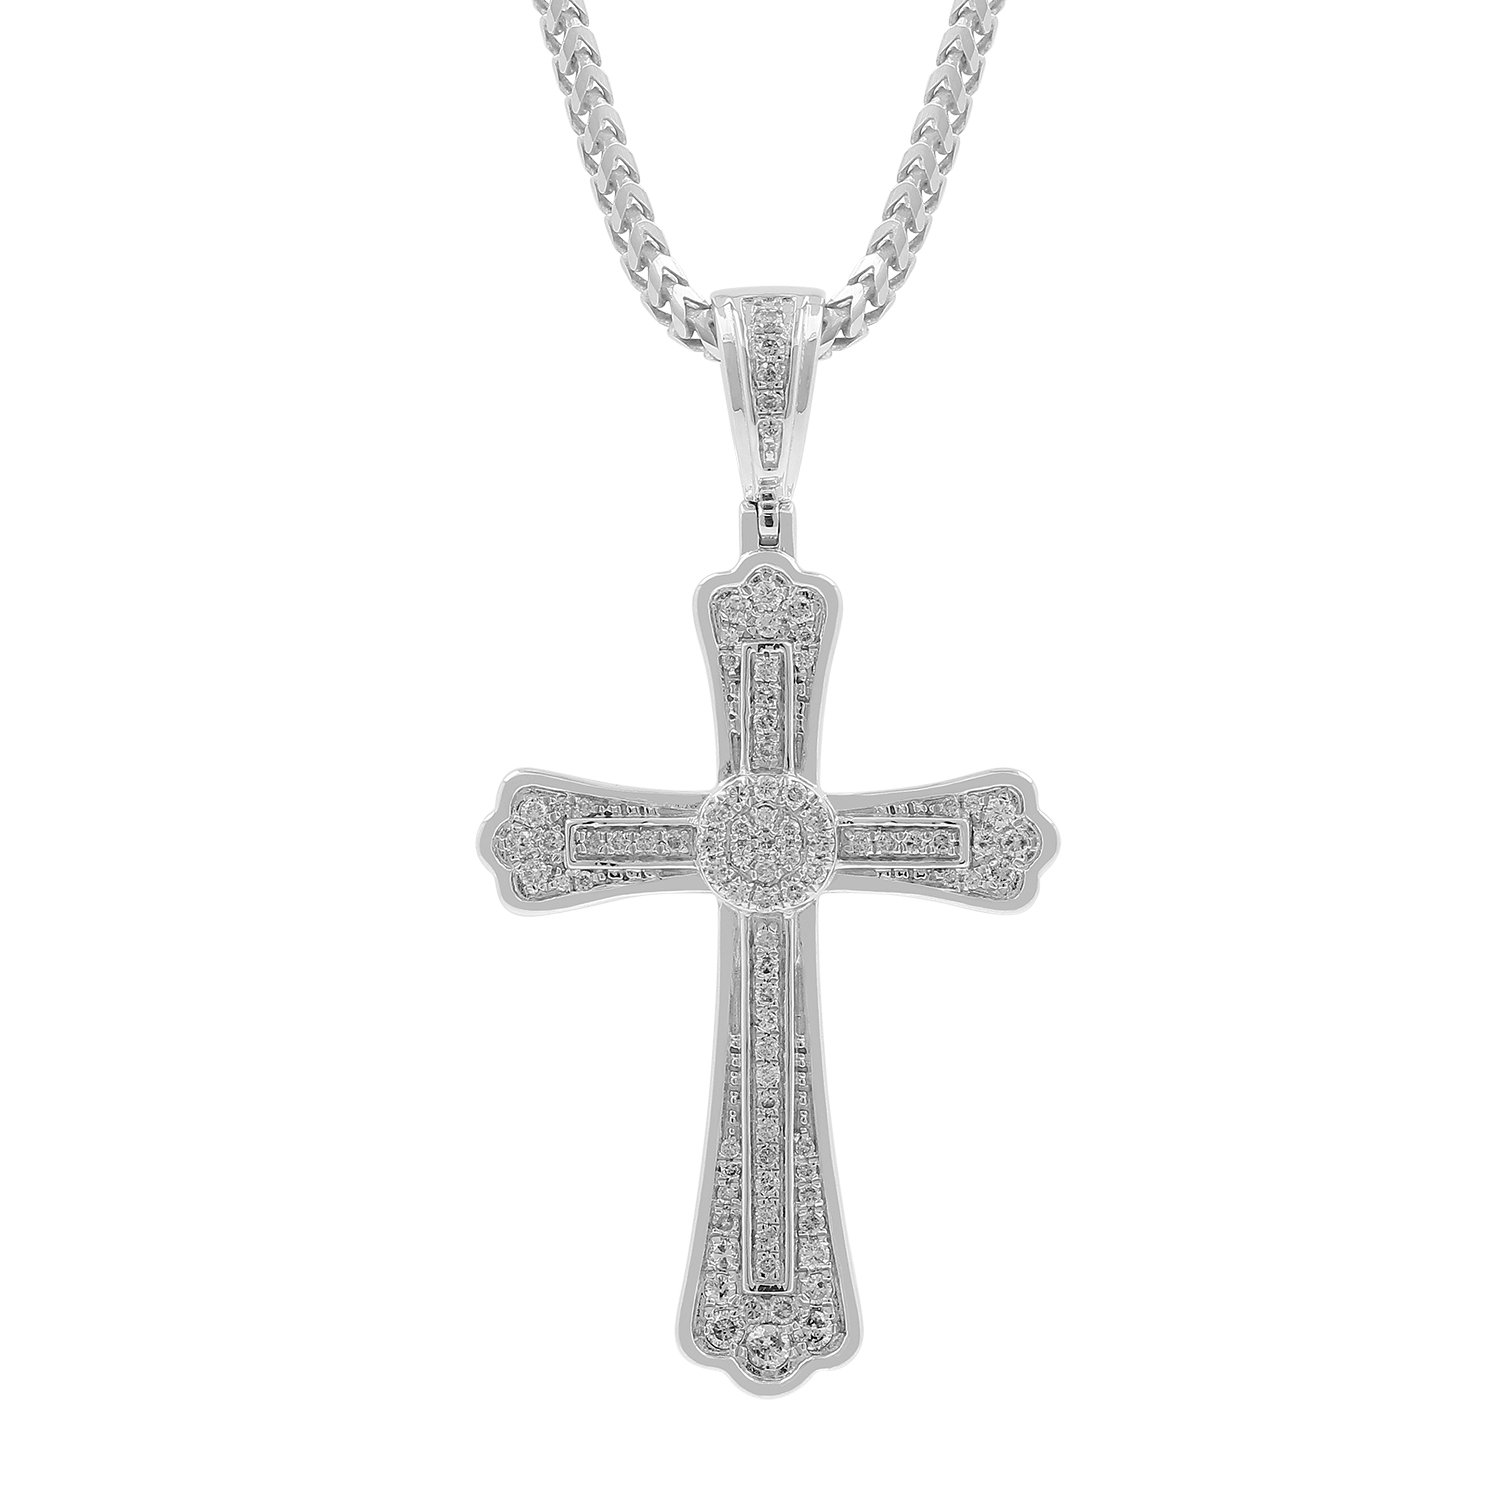 0.60ct Diamond Cross Religious Mens Hip Hop Pendant Necklace in 925 Silver (I-J, I2-I3)